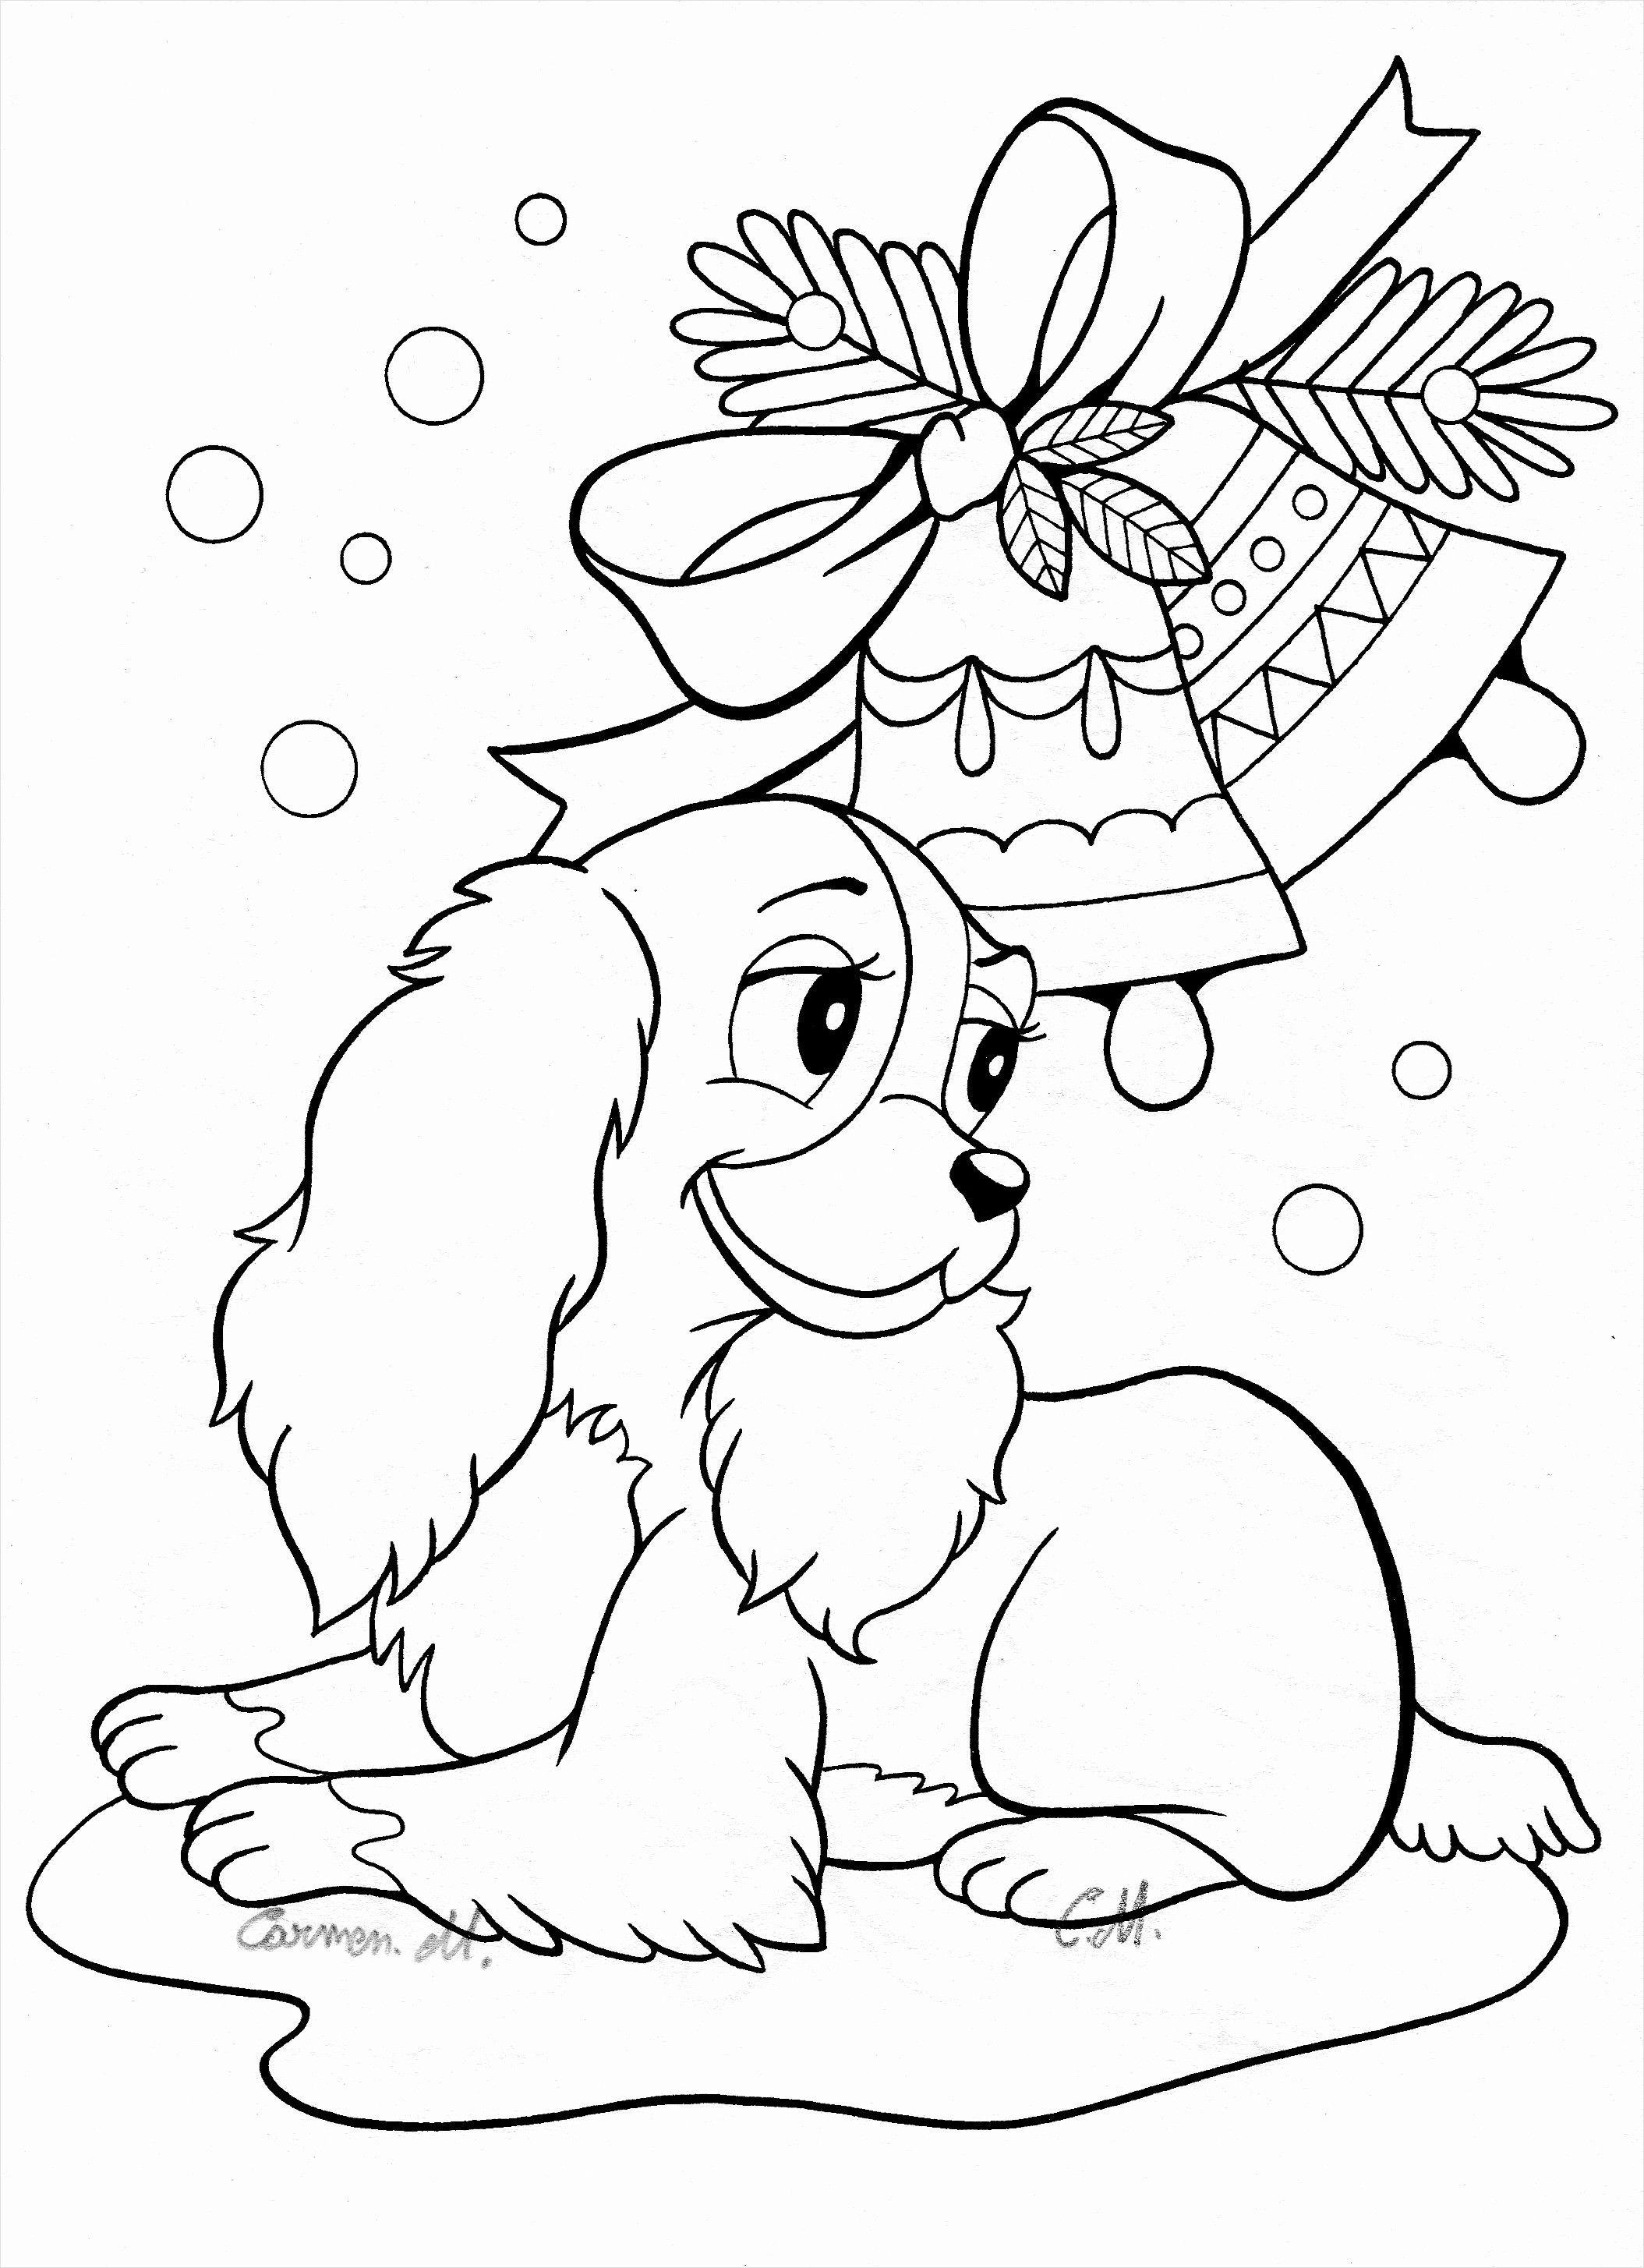 Cute Dog Coloring Pages Through The Thousands Of Photos On The Web Regarding Printable Christmas Coloring Pages Disney Coloring Pages Mermaid Coloring Pages